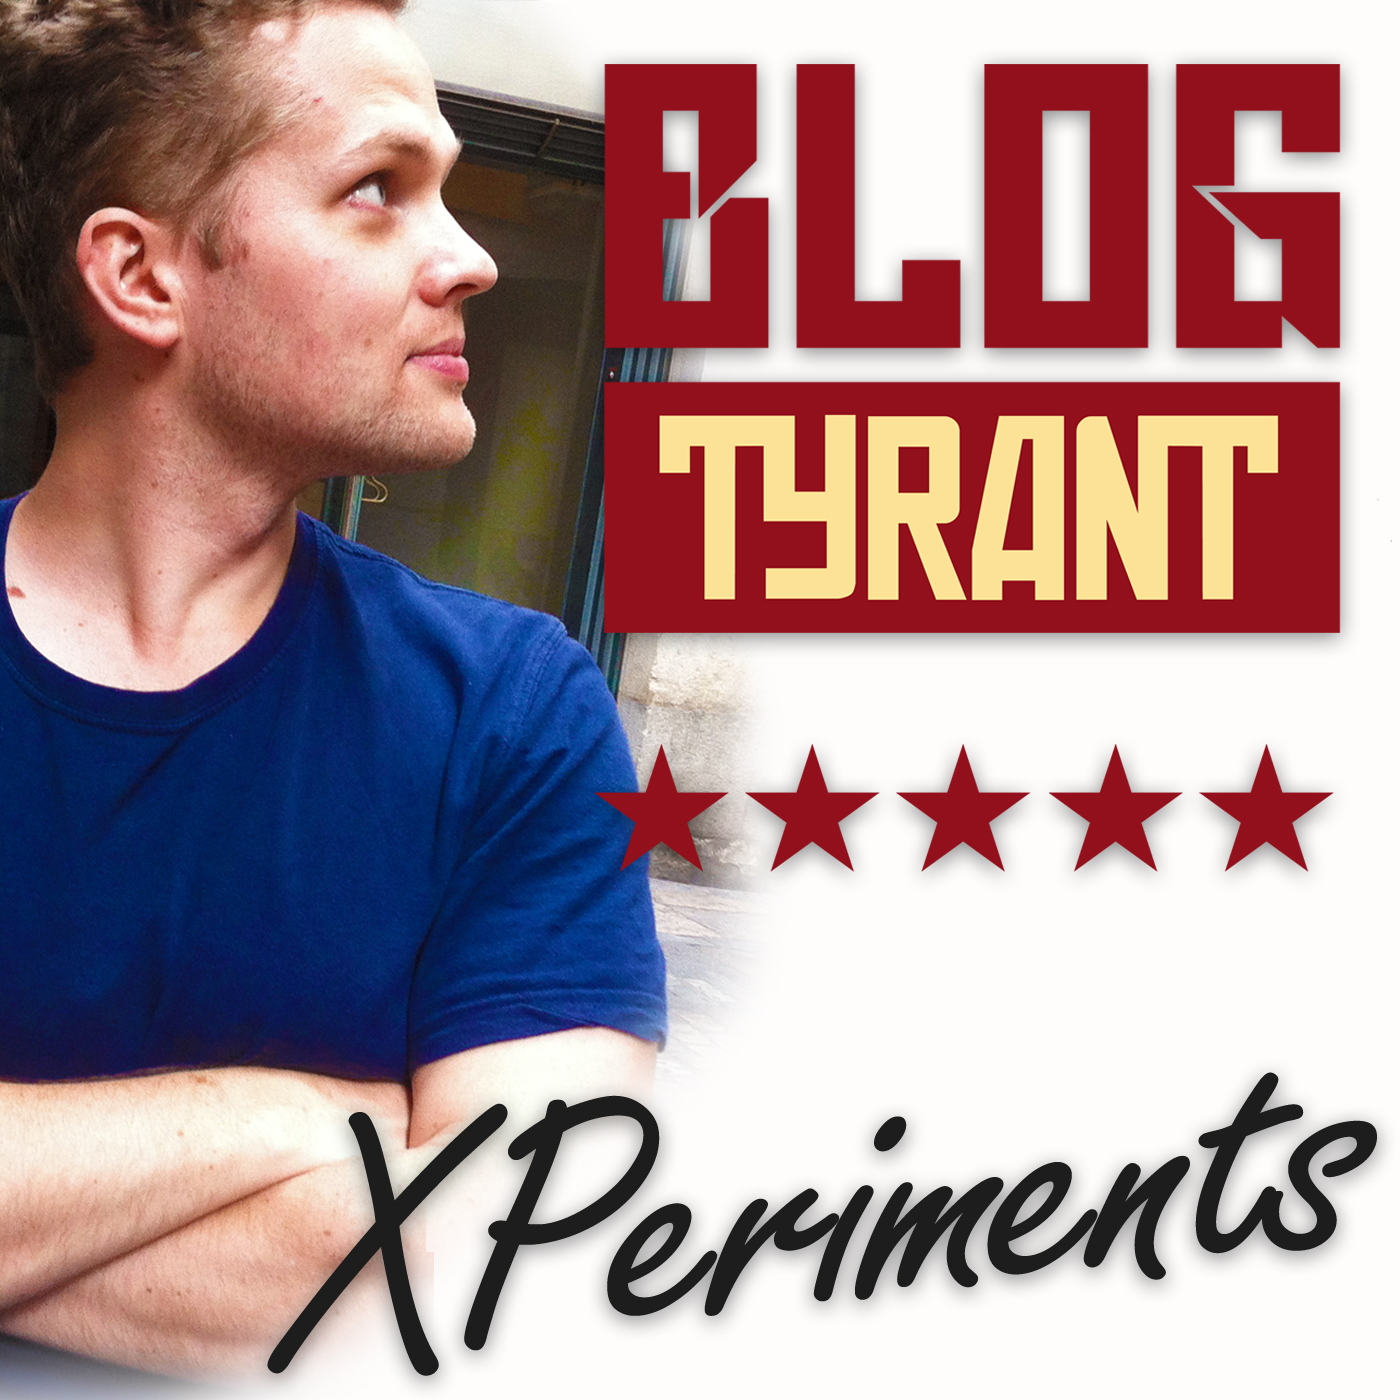 Blog Tyrant XPeriments: Experiments in Blogging and Internet Marketing